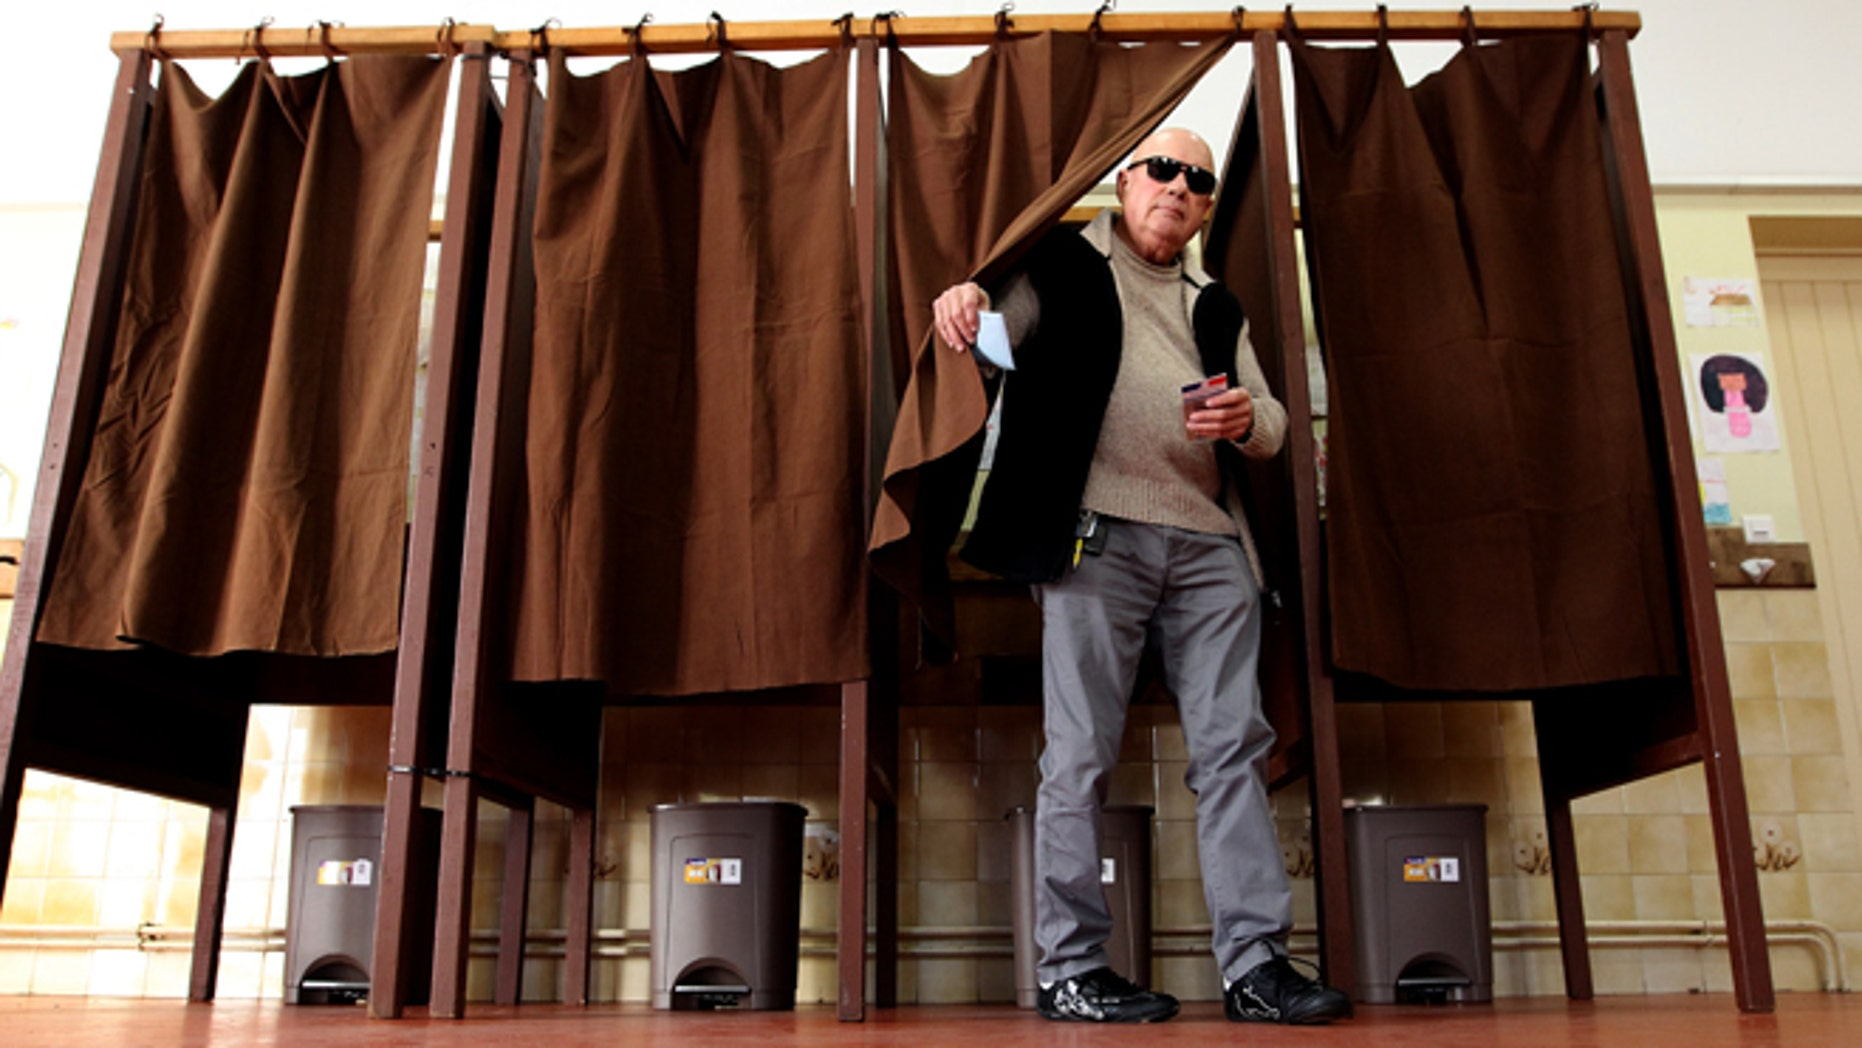 A French man leaves the polling booth before voting in the regional elections.